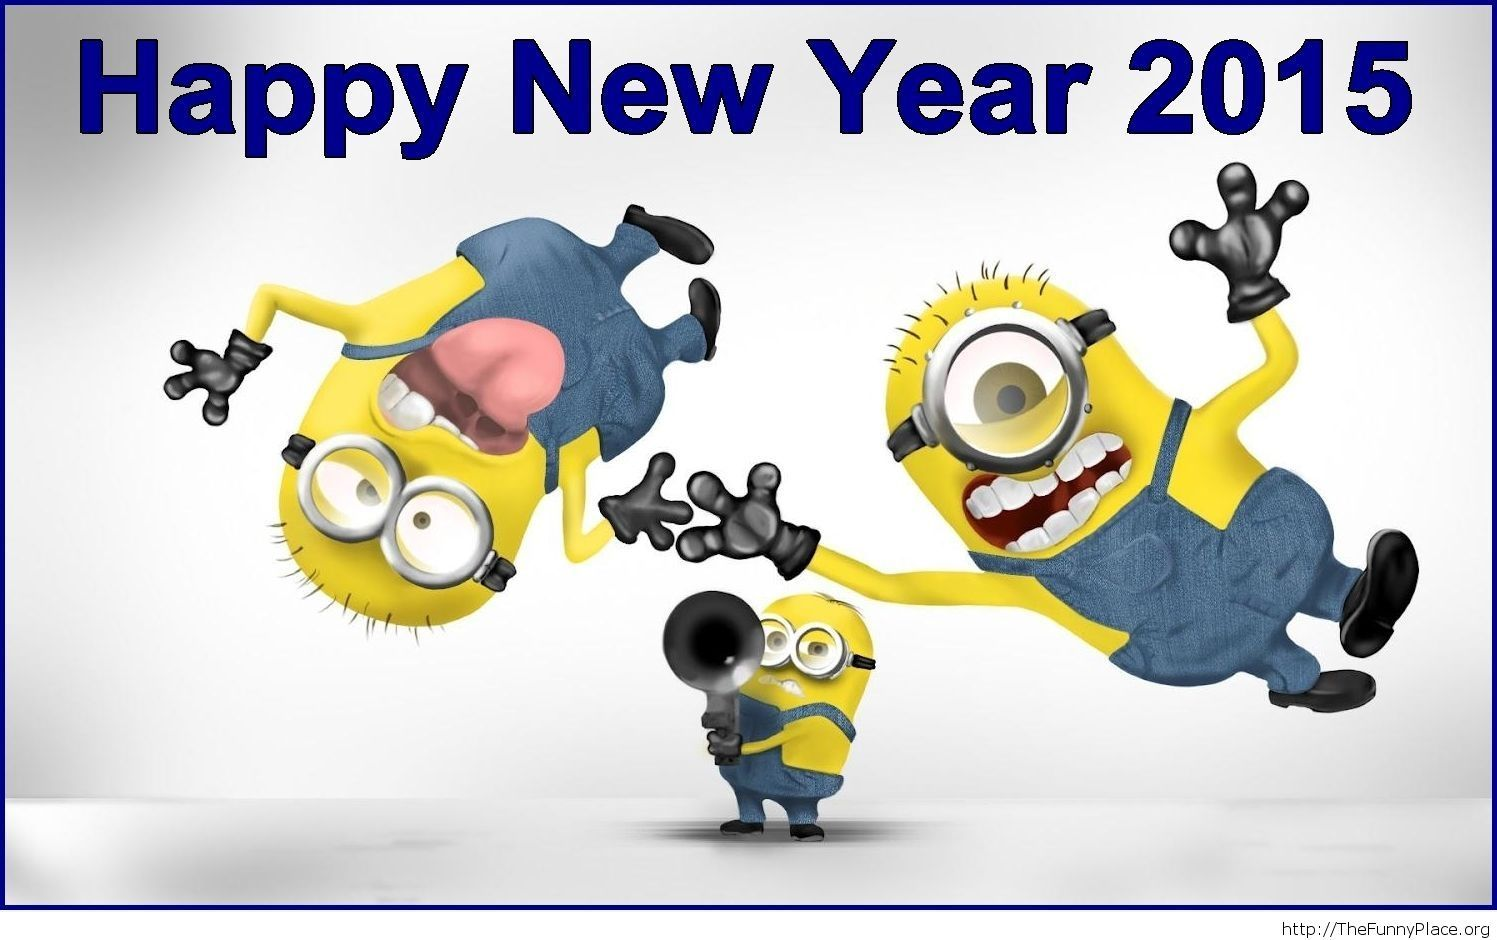 Funny Minions Hd wallpaper Happy New Year